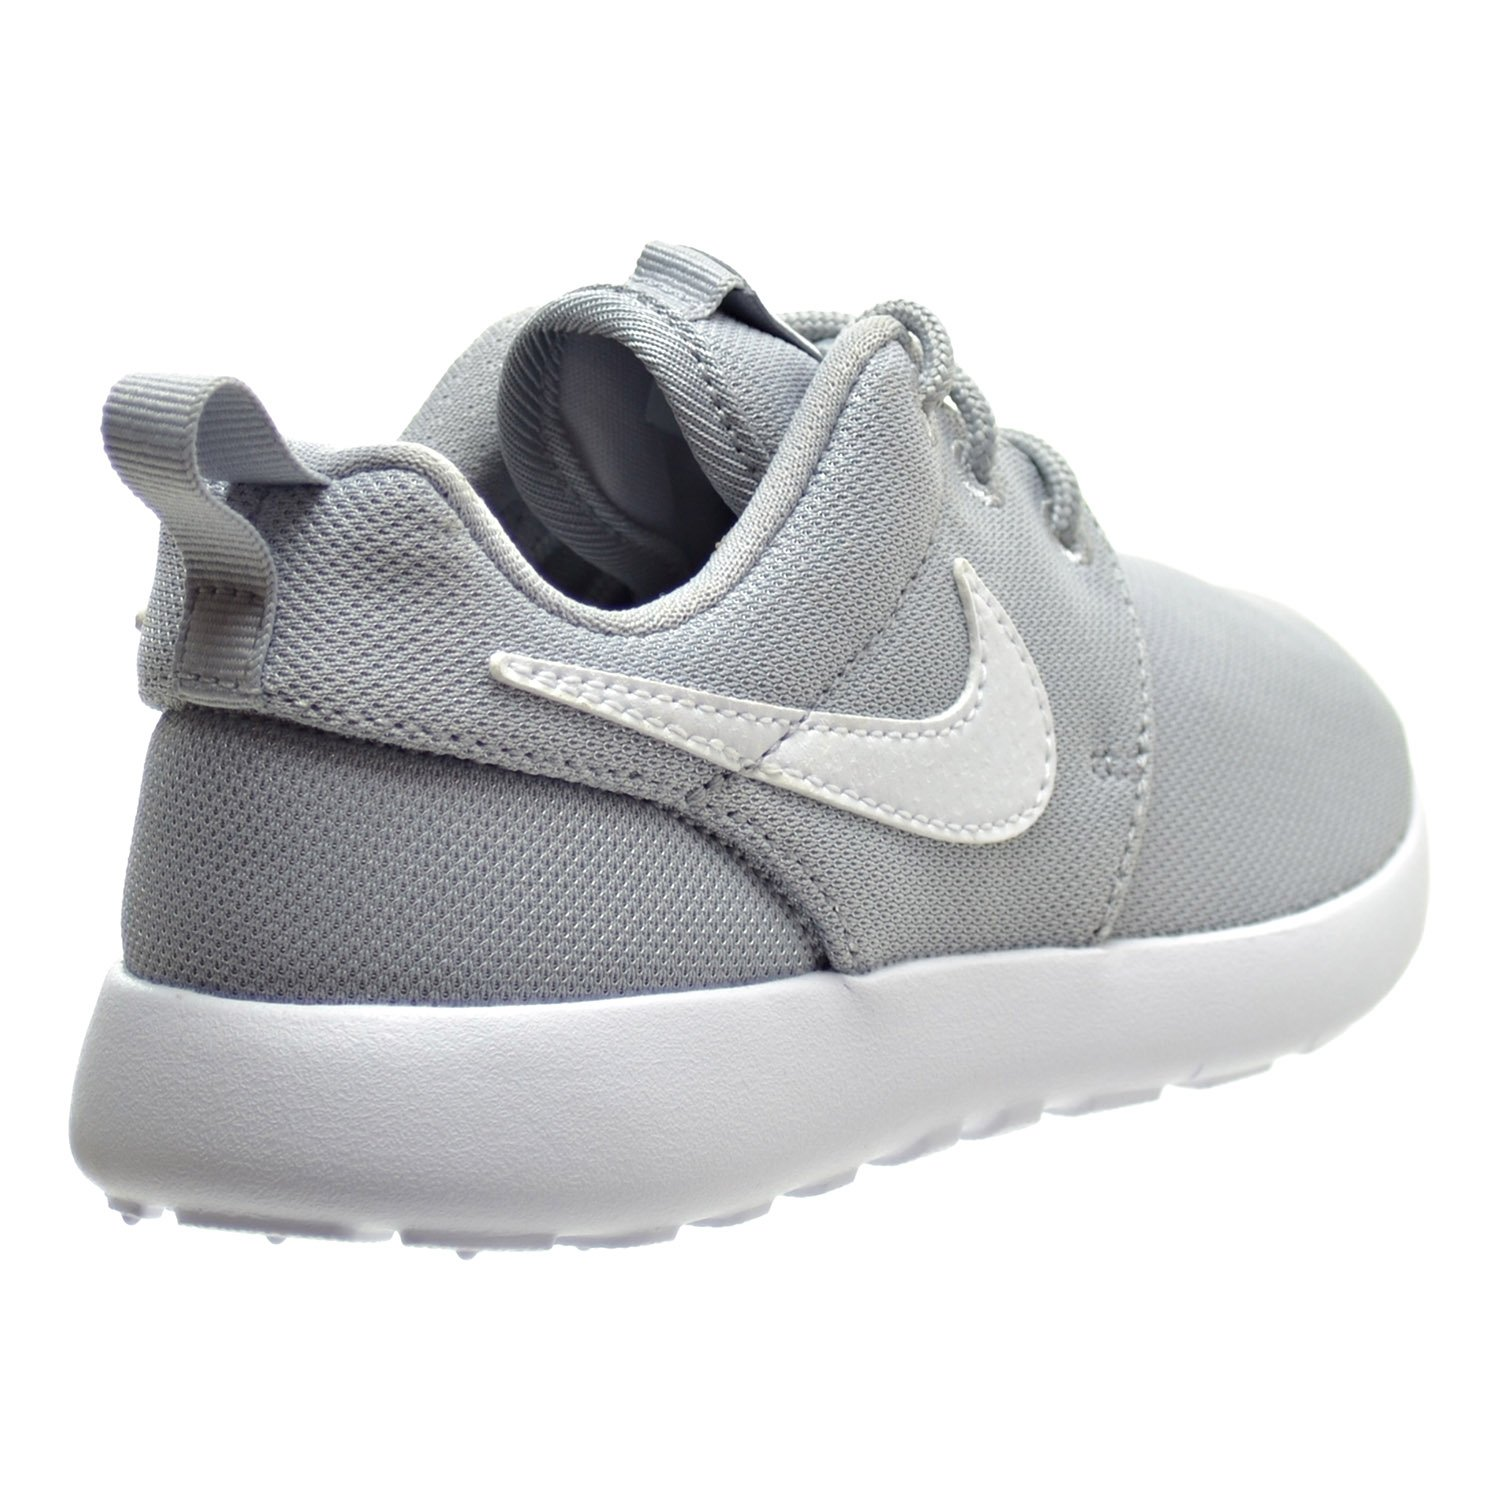 PS Little Kid/'s Shoes Wolf Grey//White 749427-033 Nike Roshe One